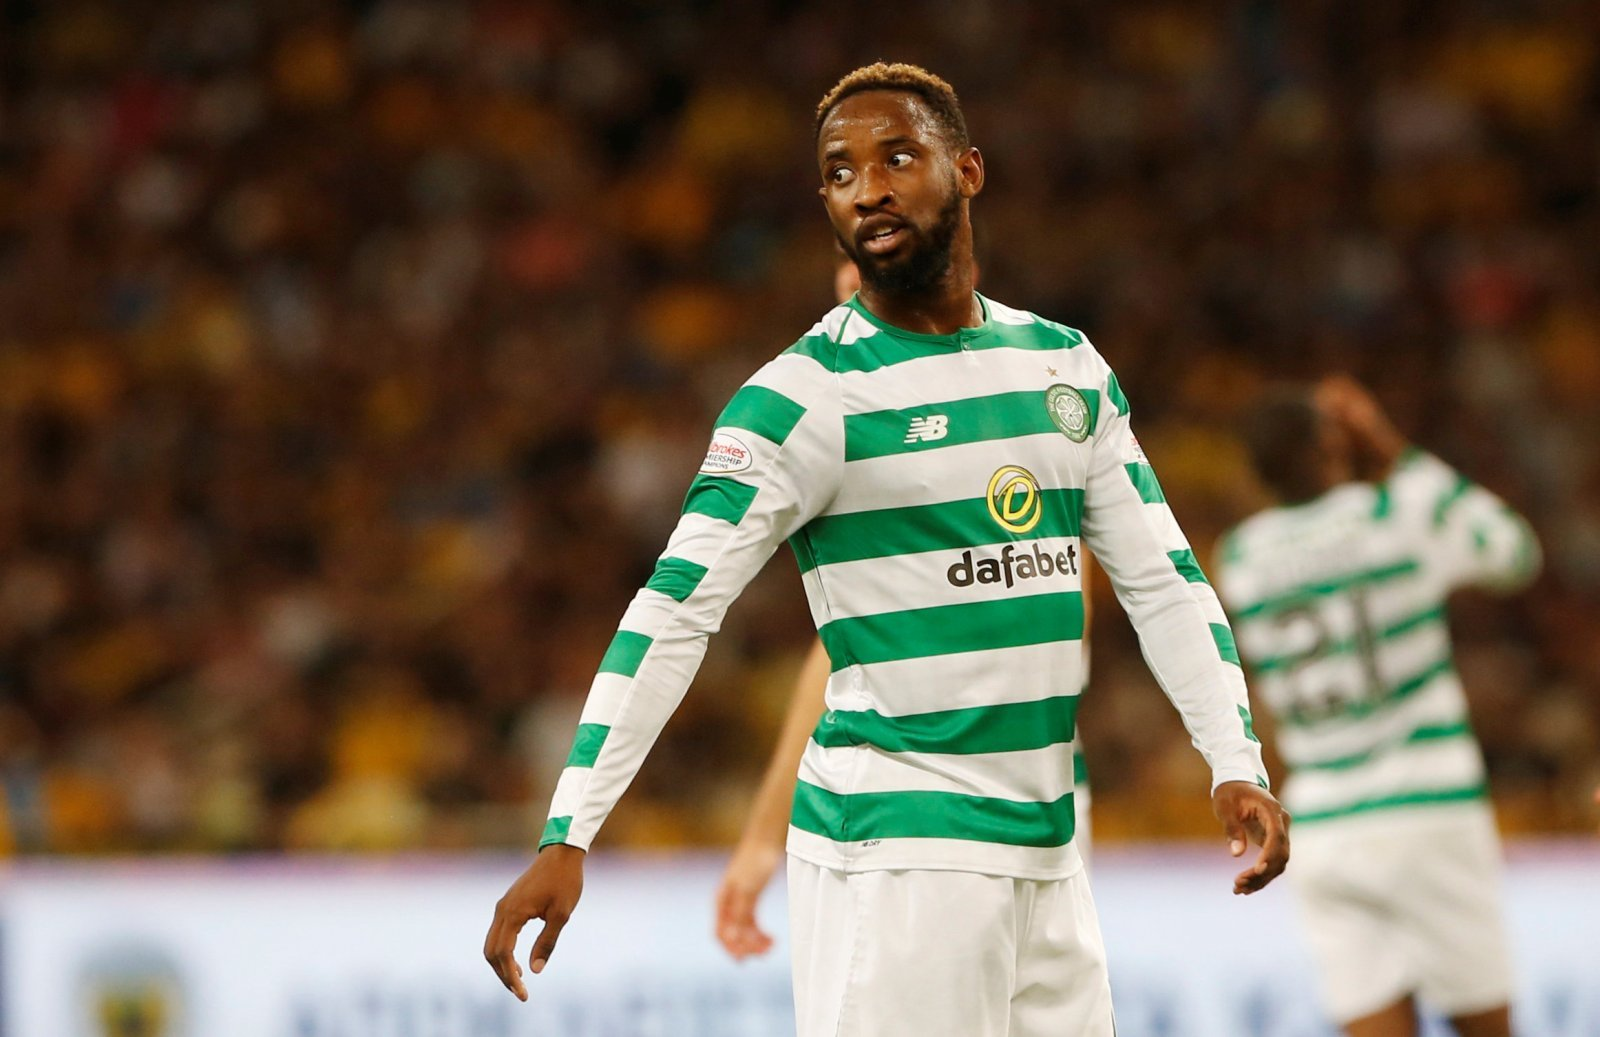 Celtic: Fans react to clip of Moussa Dembele goal